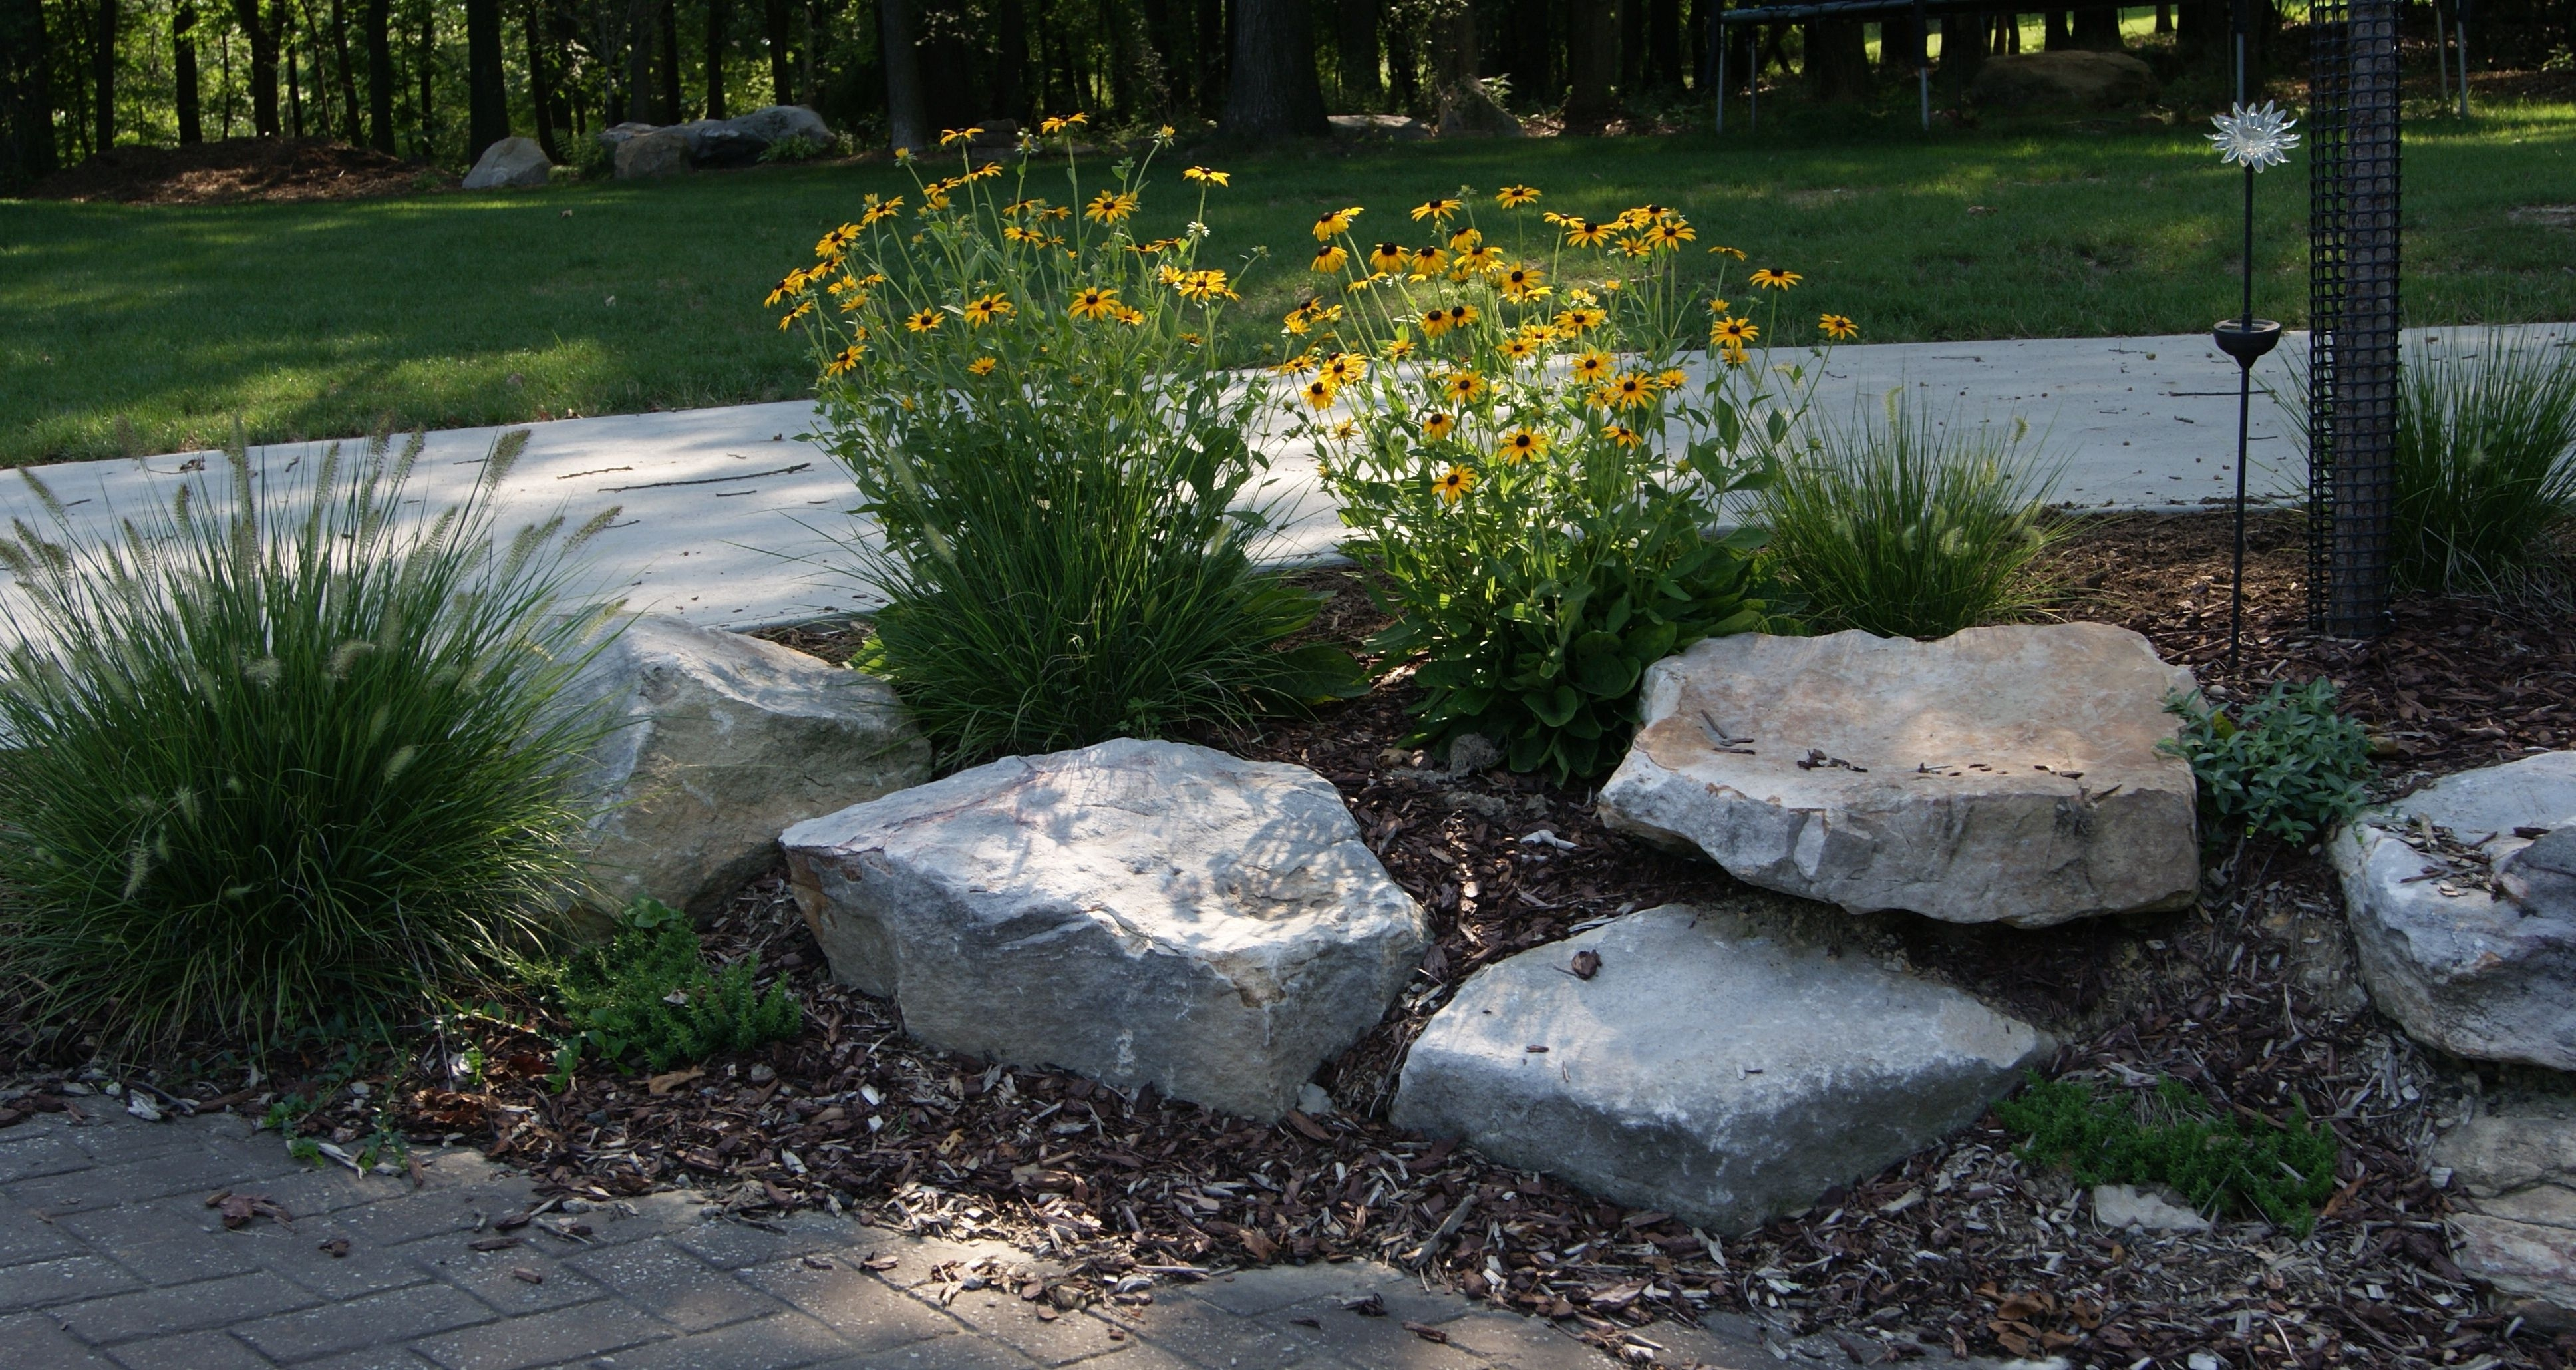 Image of: Flower Power Glenhaven Outdoor Furniture The Best Flowers Ideas As In Decorative Rocks For Landscaping Decorative Rocks For Landscaping Ideas